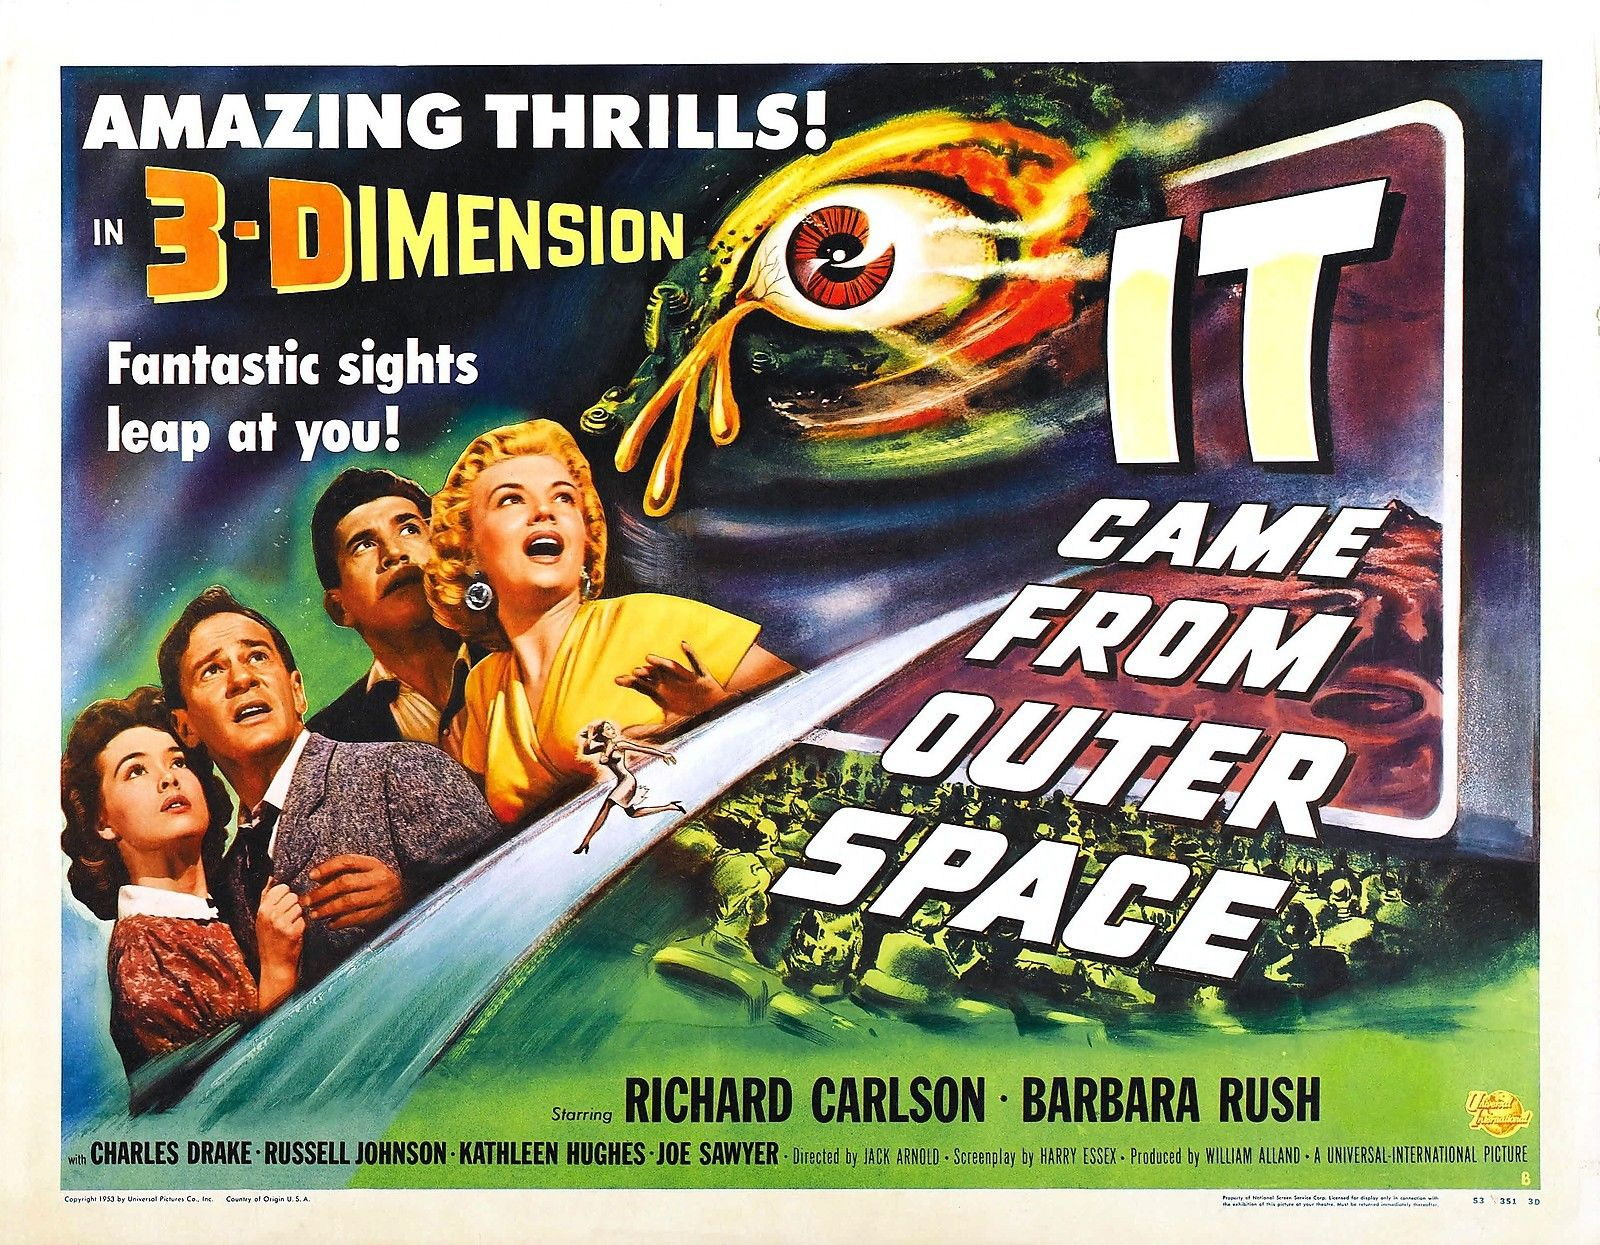 73174-IT-CAME-FROM-OUTER-SPACE-Sci-Fi-Monster-Wall-Print-Poster-Affiche